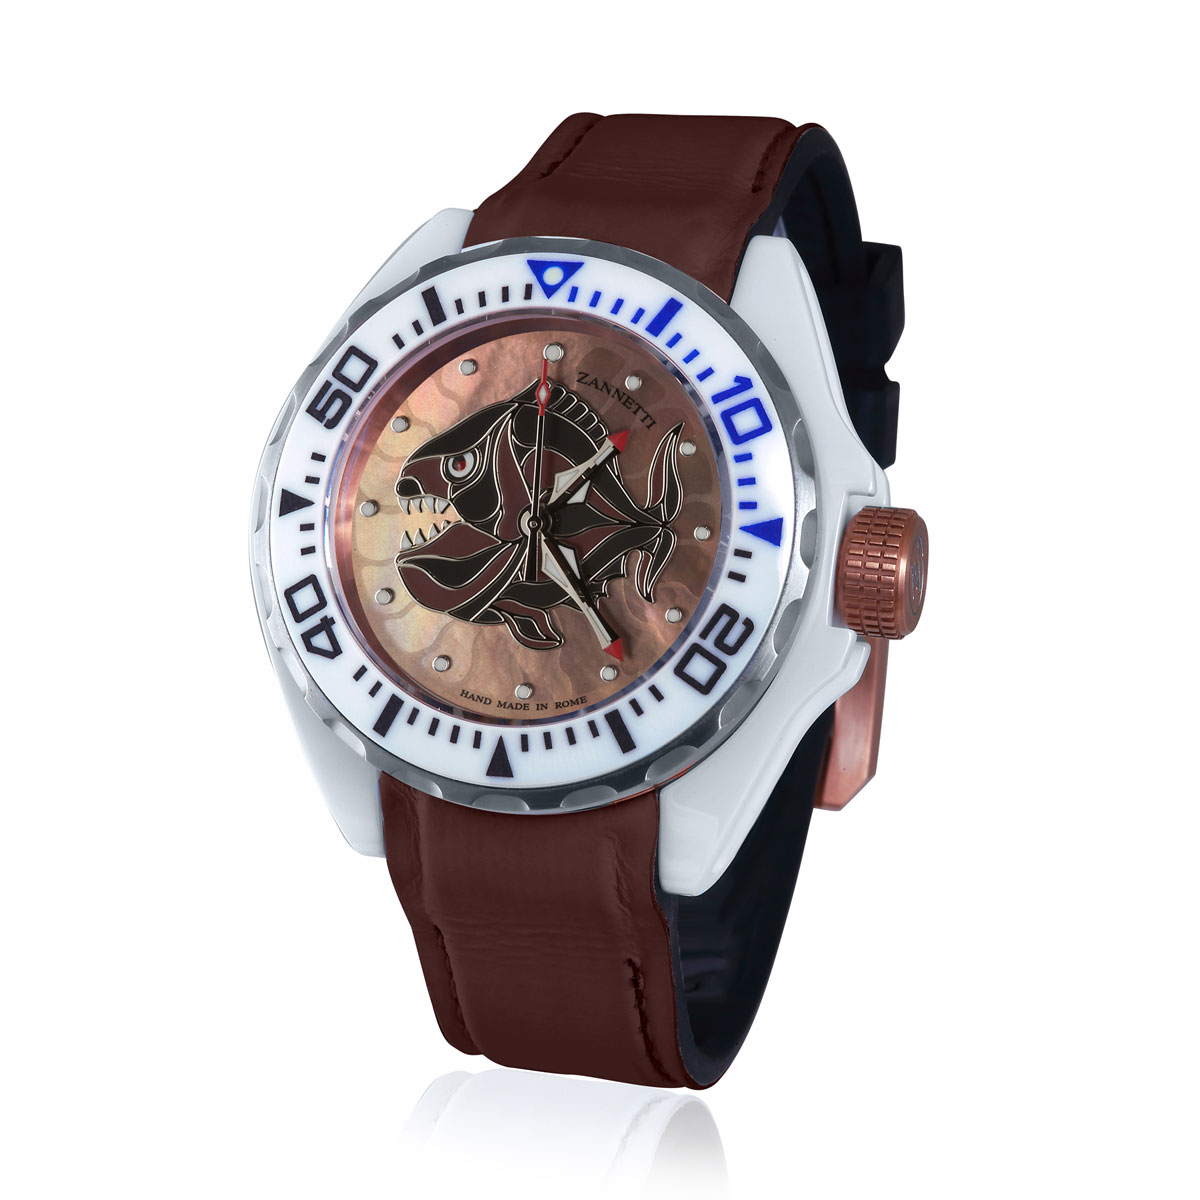 Zannetti Scuba Art Piranha High Tech Ceramics MOP Brown Dial Dive Watch